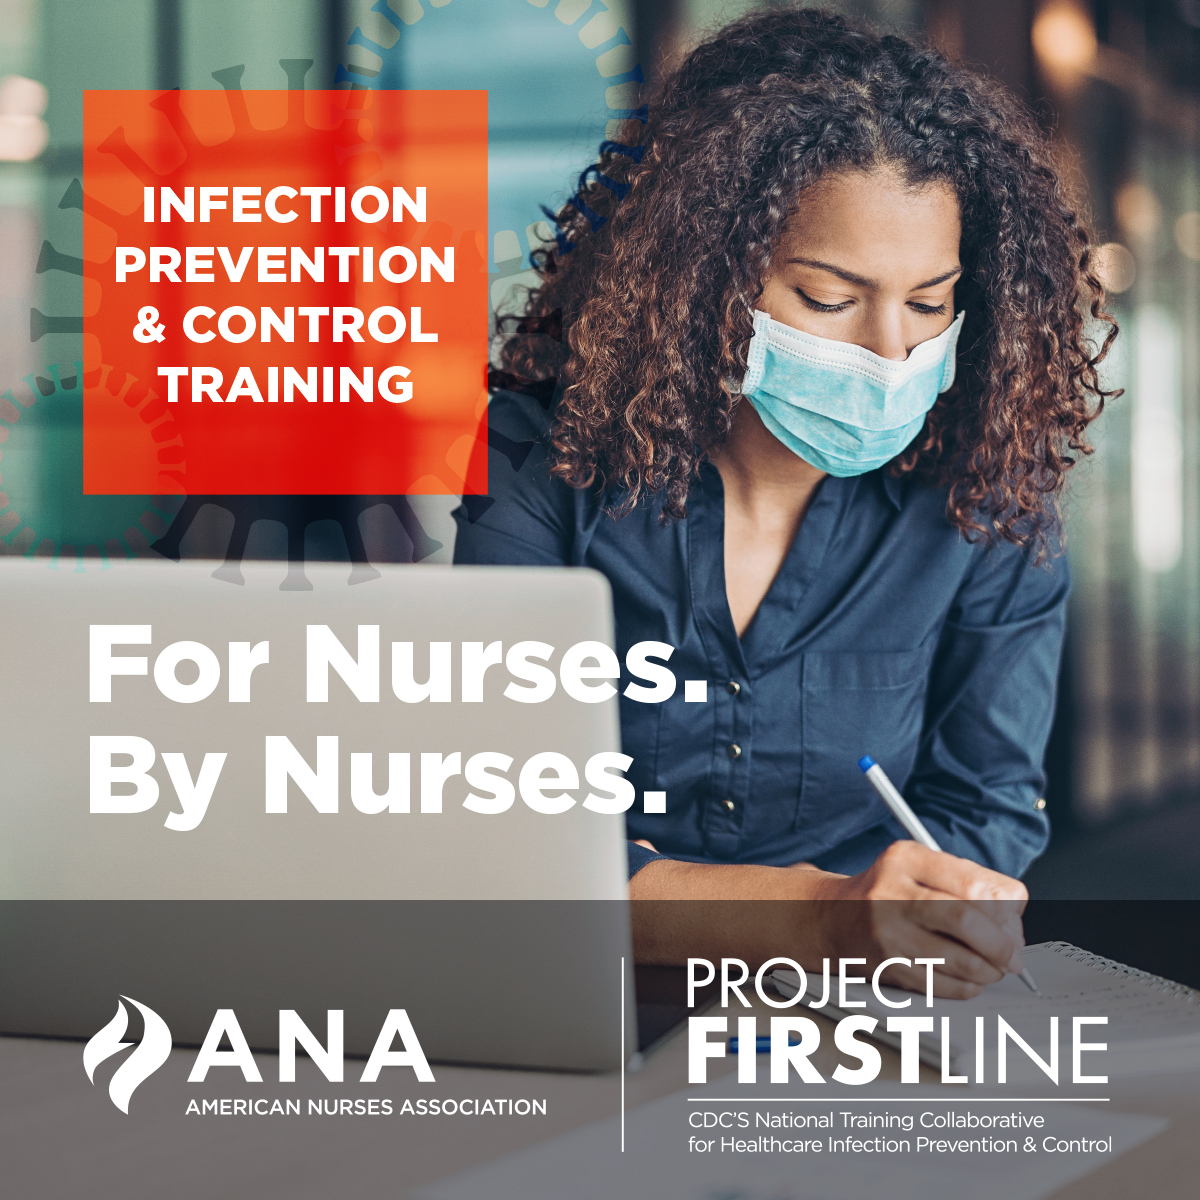 Infection Prevention and Control Training. For Nurses by Nurses. Project Firstline.